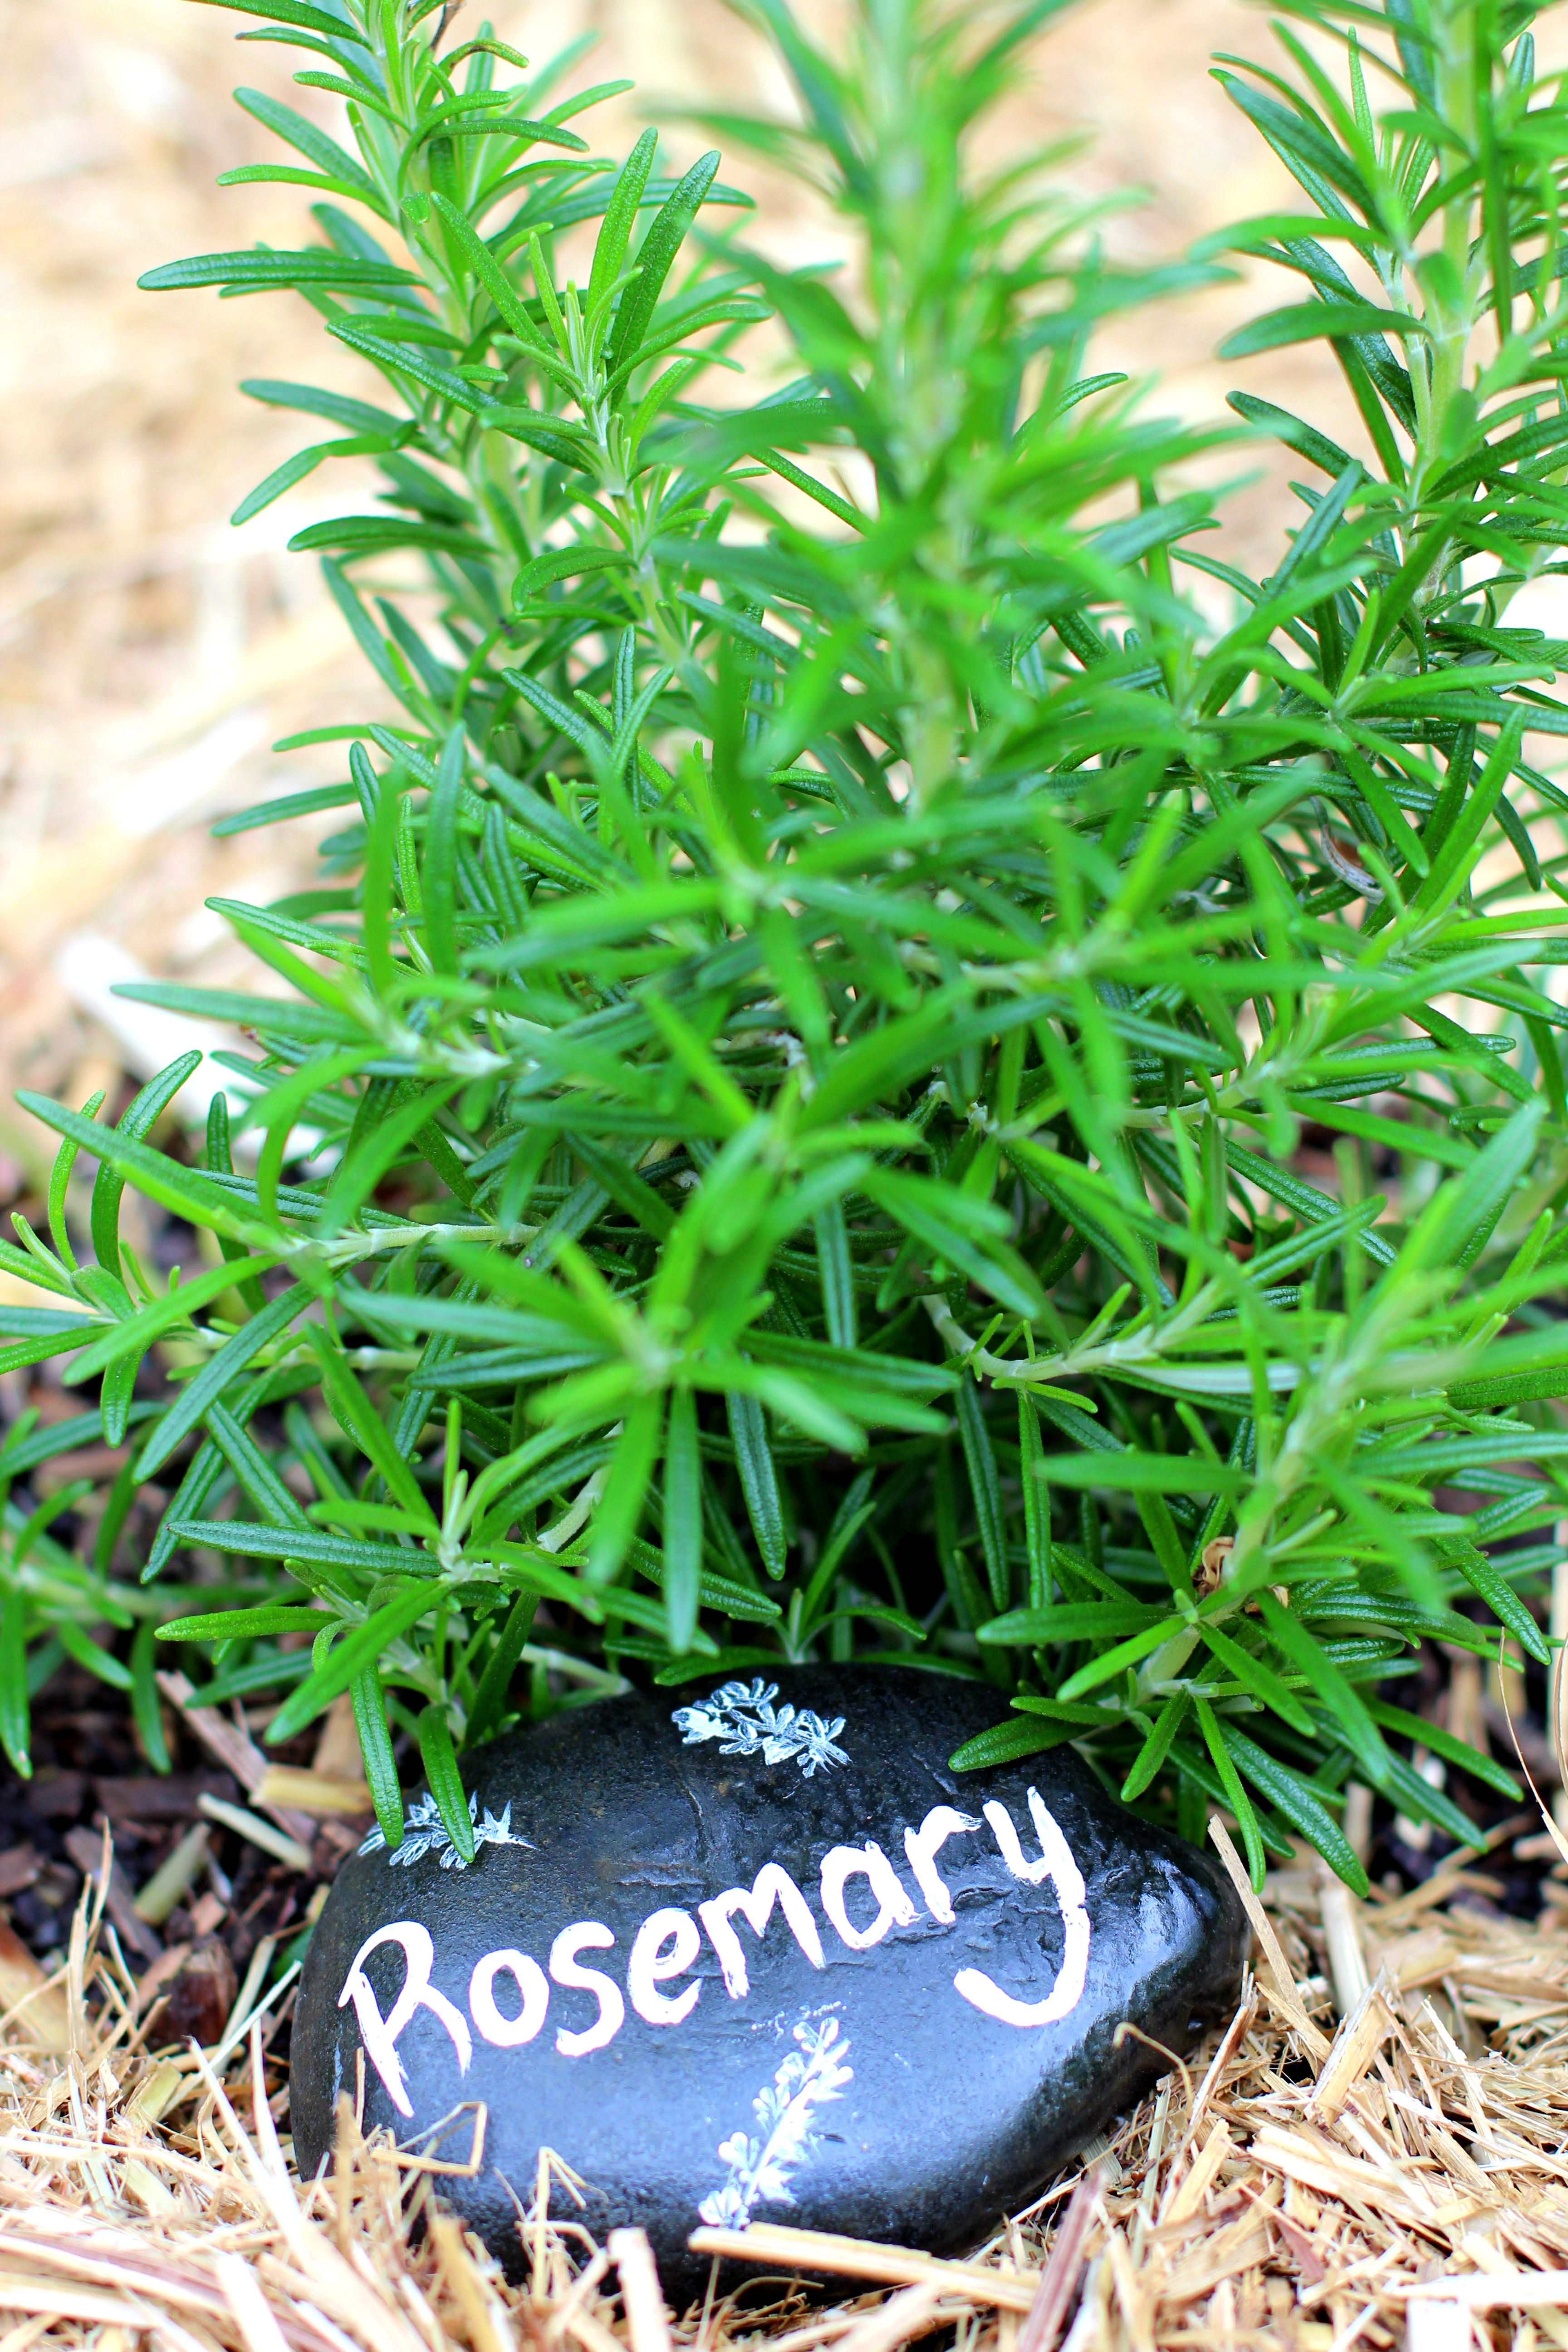 Herb Garden Stone Markers Rosemary. Purchased a bag of